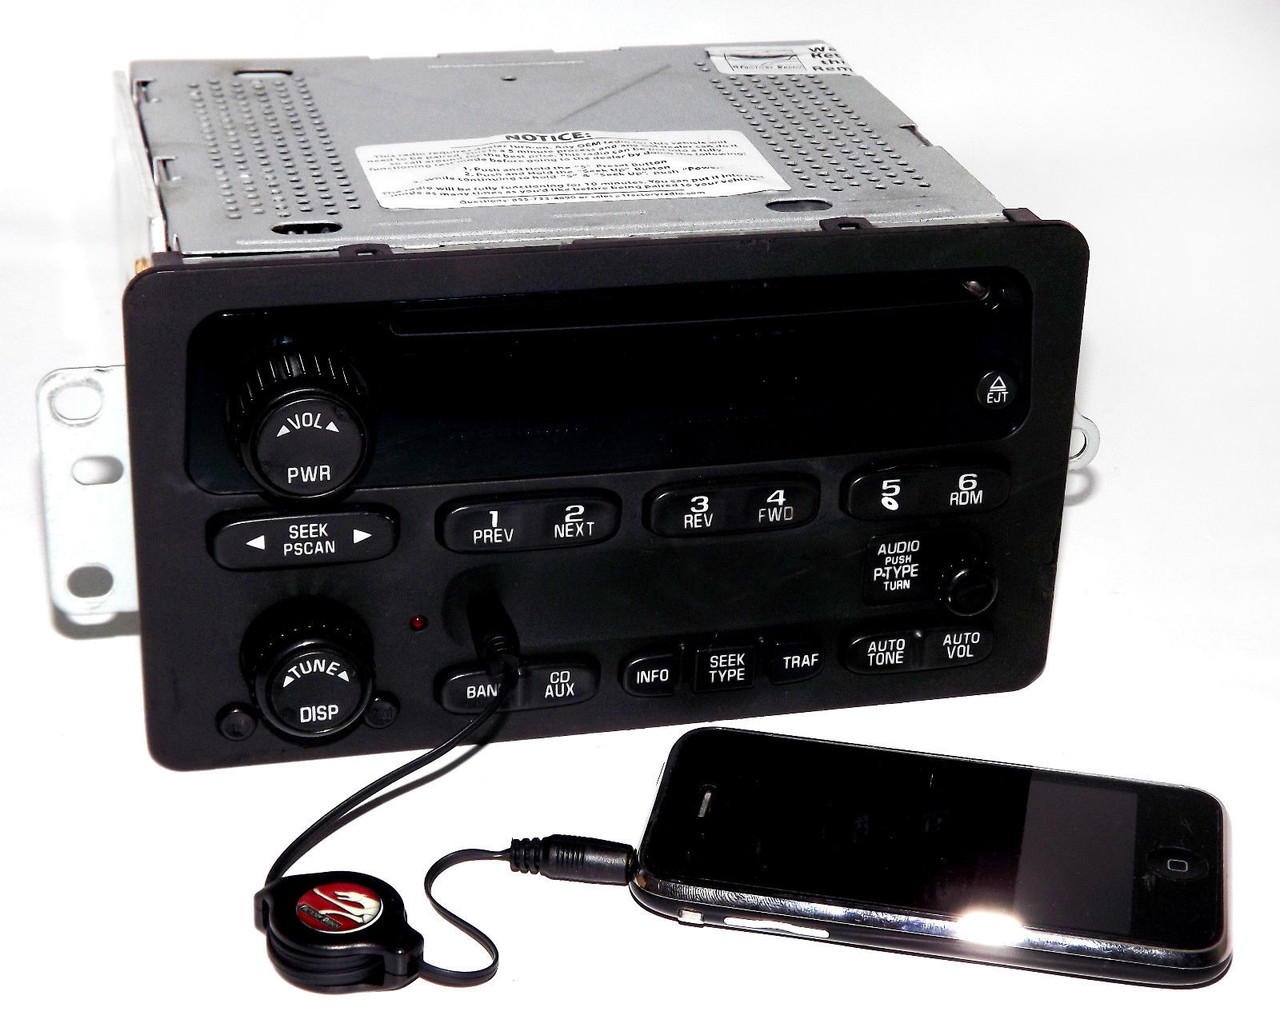 Chevy gmc s10 body 2001 2003 truck radio am fm cd w aux ipod httpd3d71ba2asa5ozoudfront12015082imageschevygmcs10body20018111gm15091316638 sciox Gallery